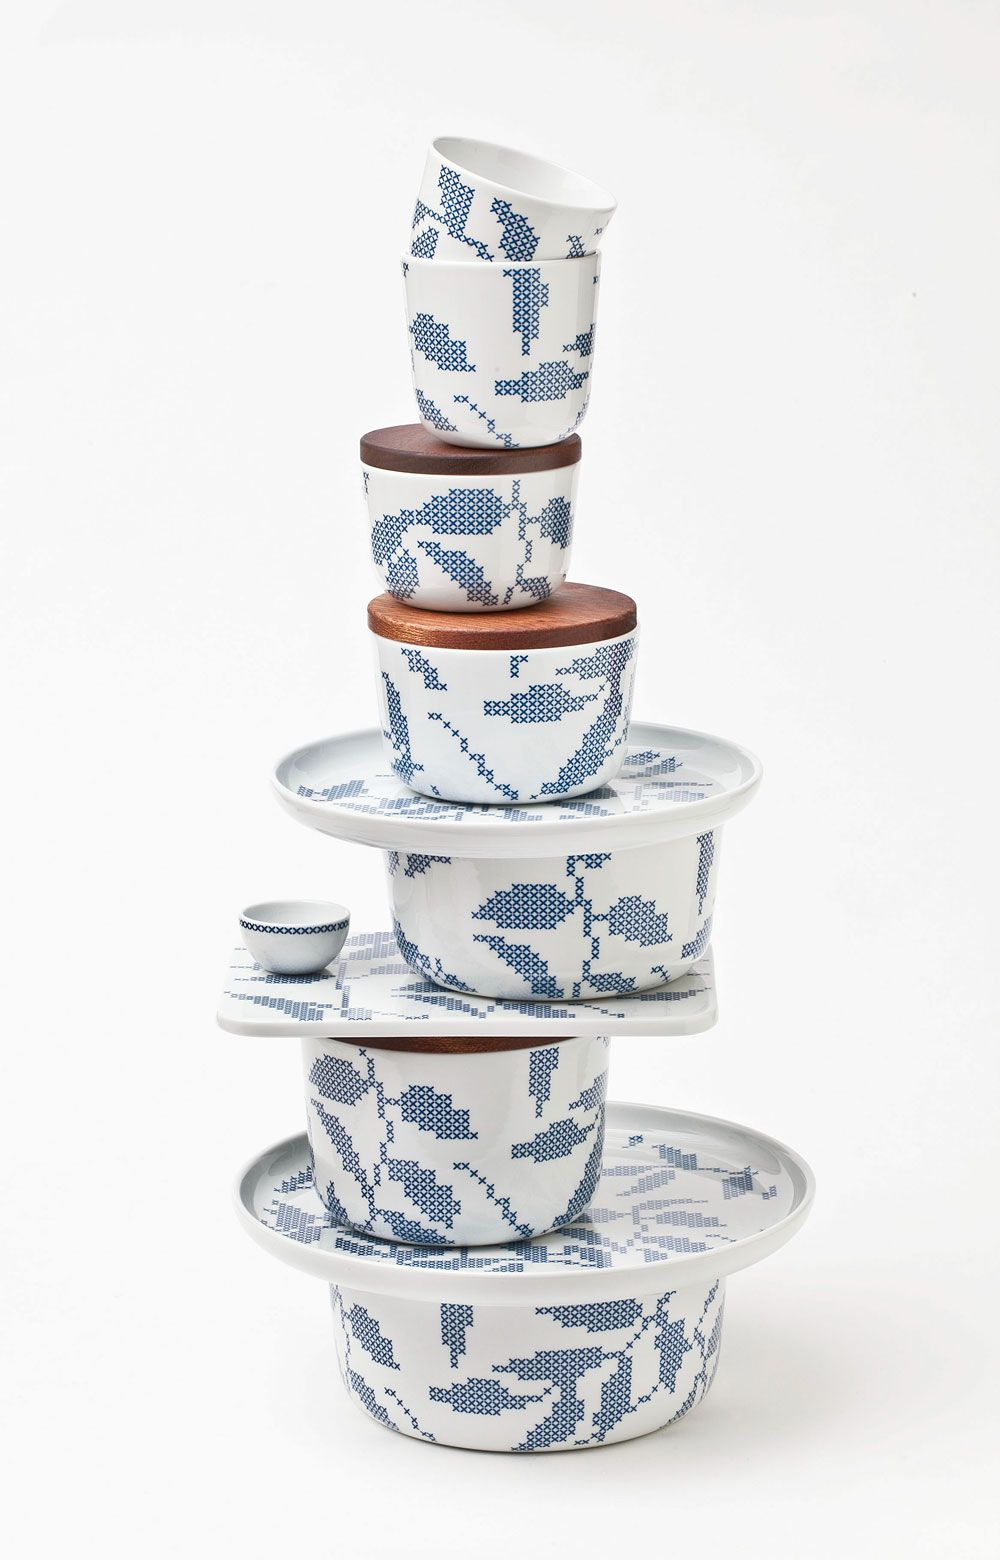 'Stitches' kitchenware by the Danist ceramist Gry Fager